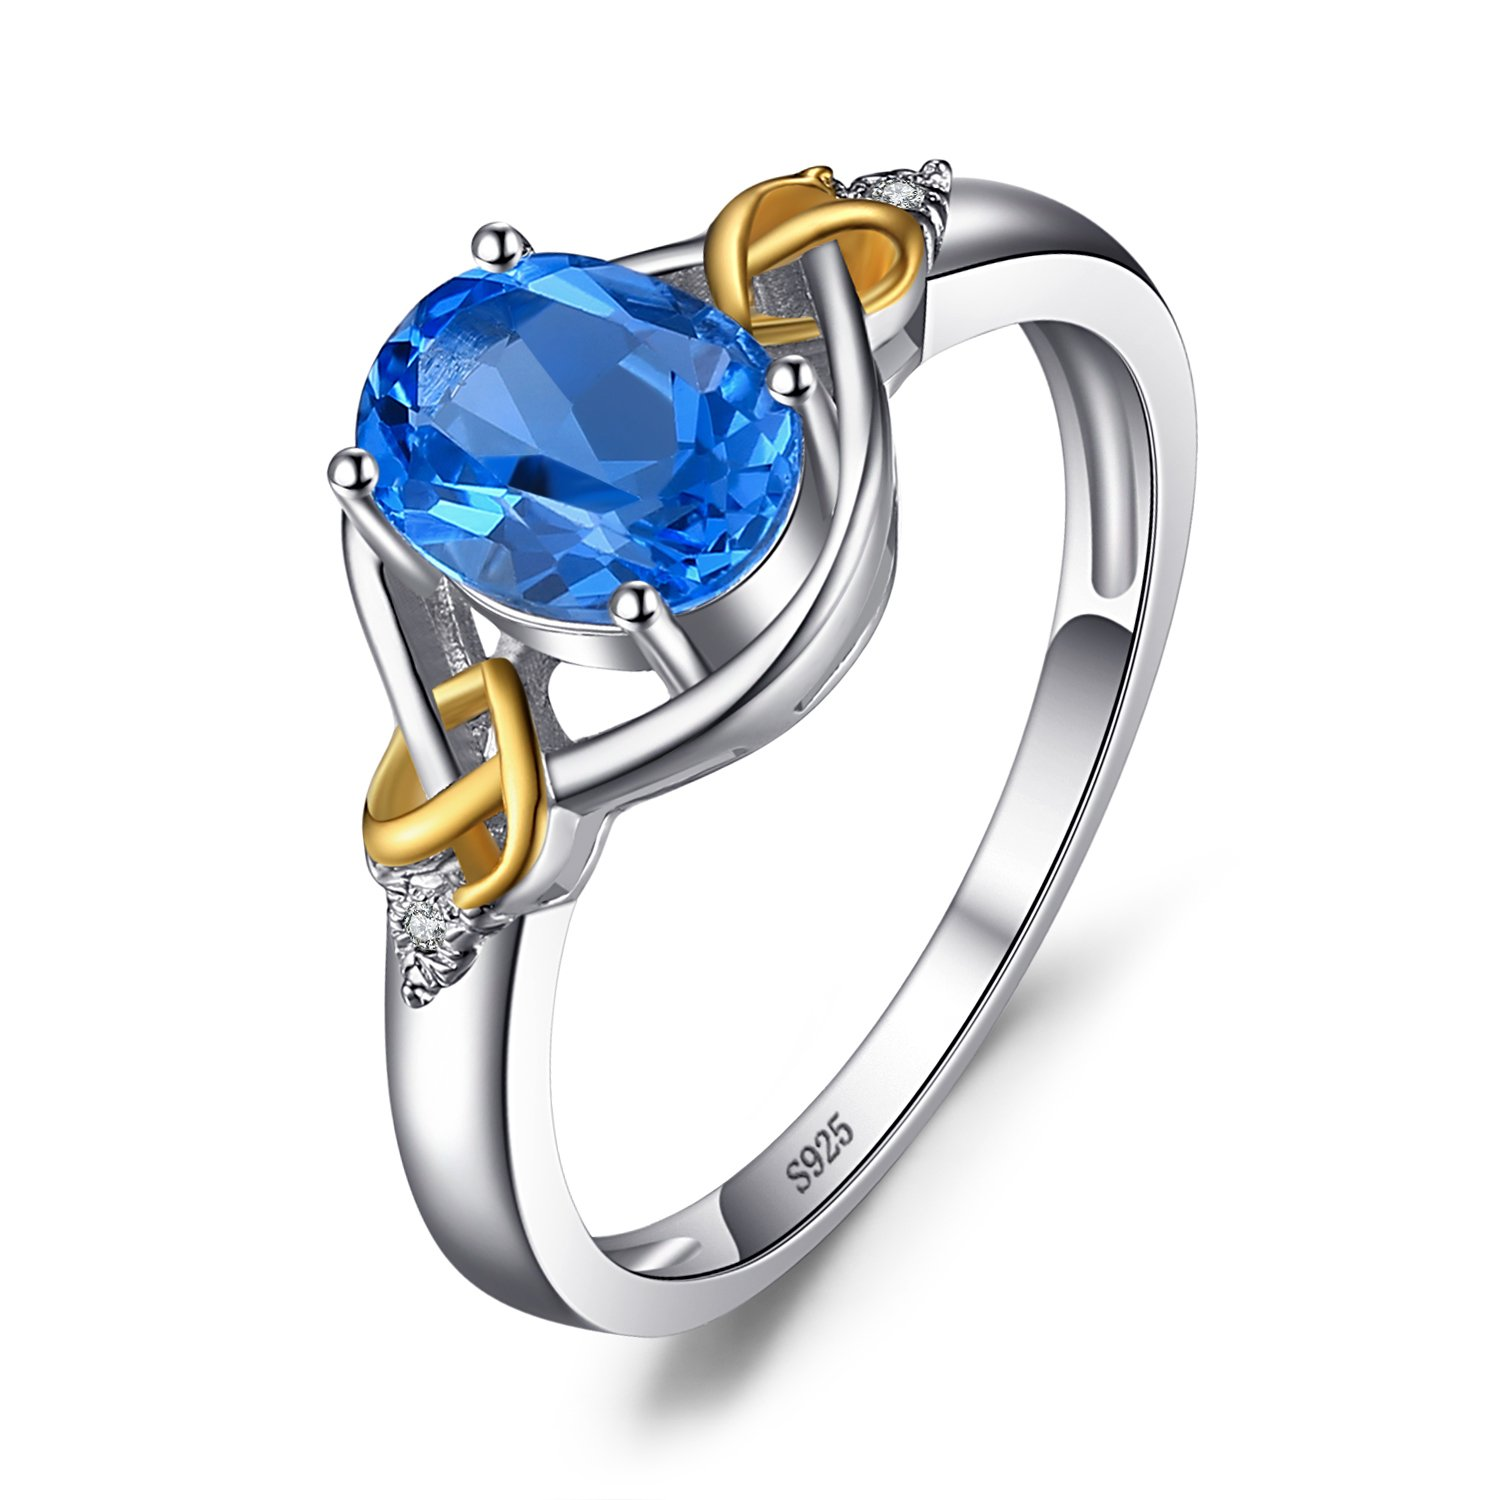 JewelryPalace Love Knot 1.5ct Natural Swiss Blue Topaz Diamond Accented Promise Ring 925 Sterling Silver 18K Yellow Gold Size 7 by JewelryPalace (Image #1)